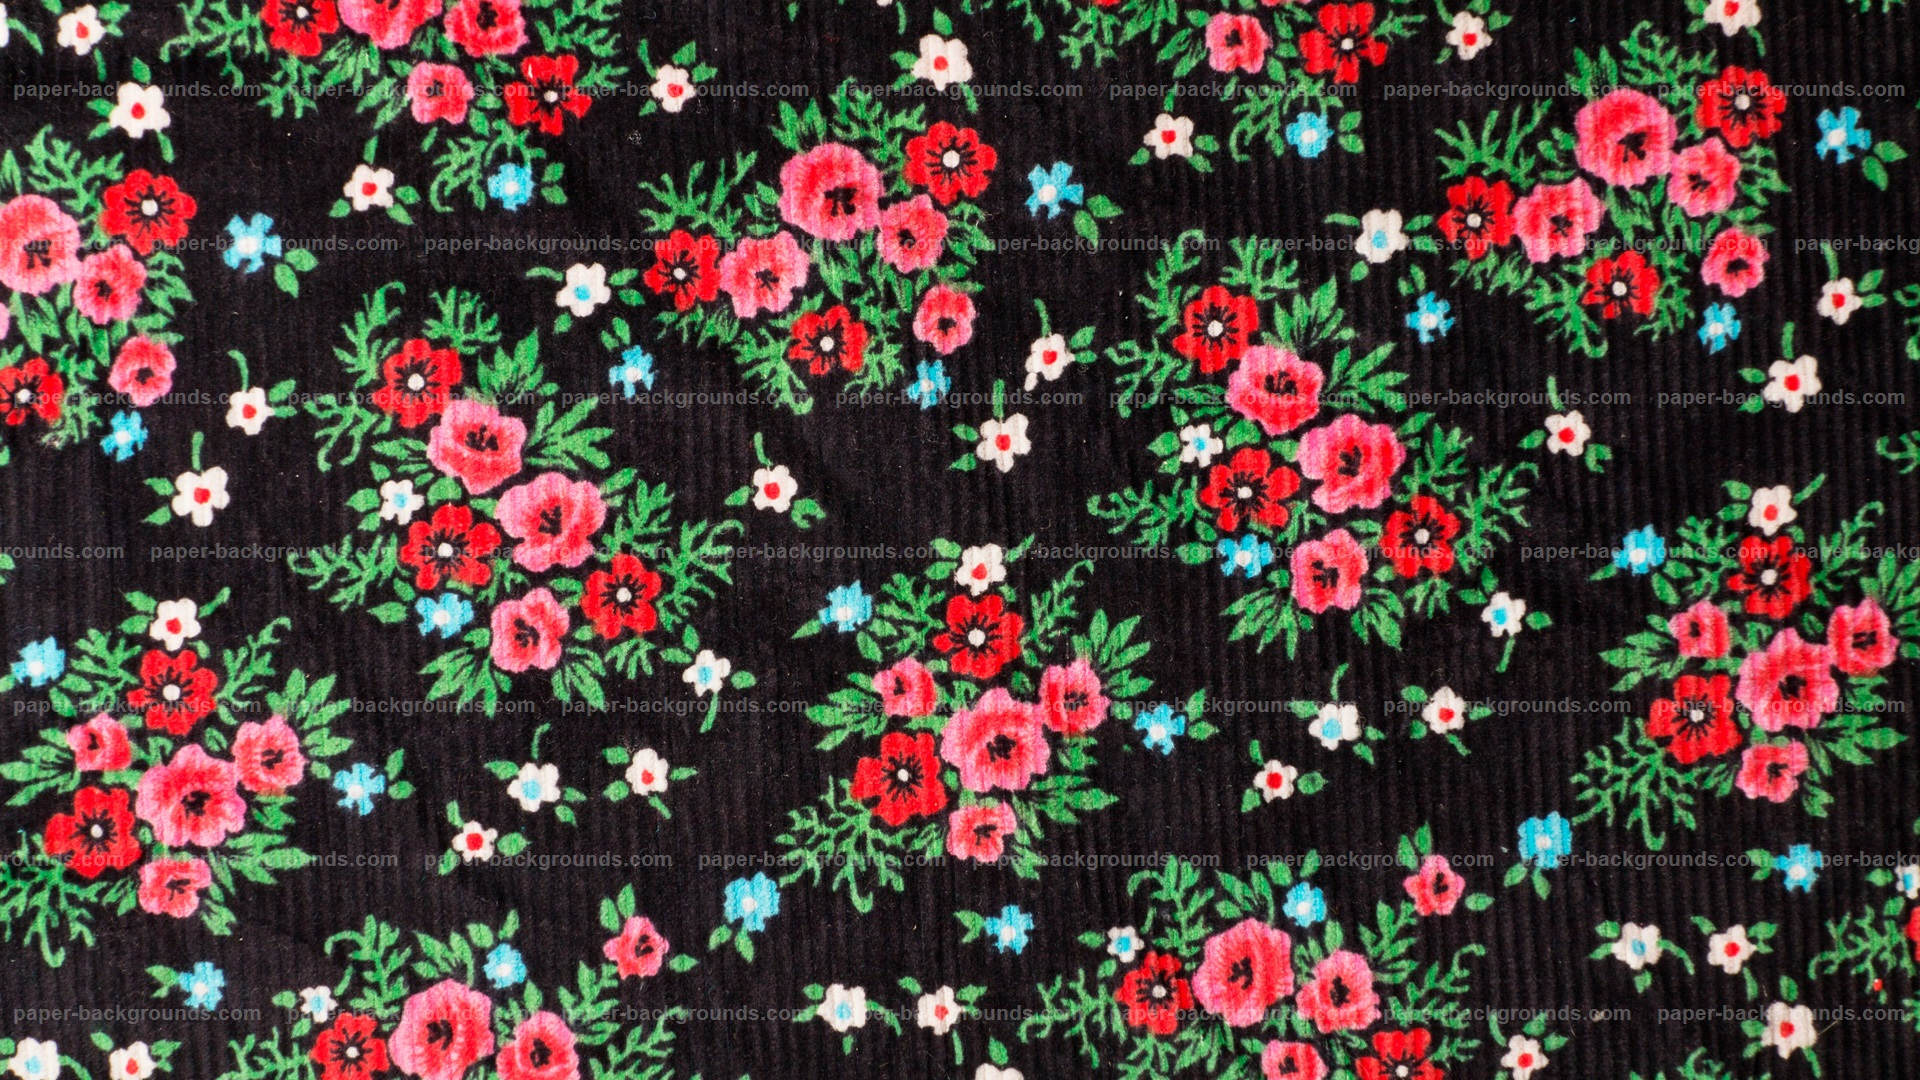 Red Flowers on Black Fabric HD